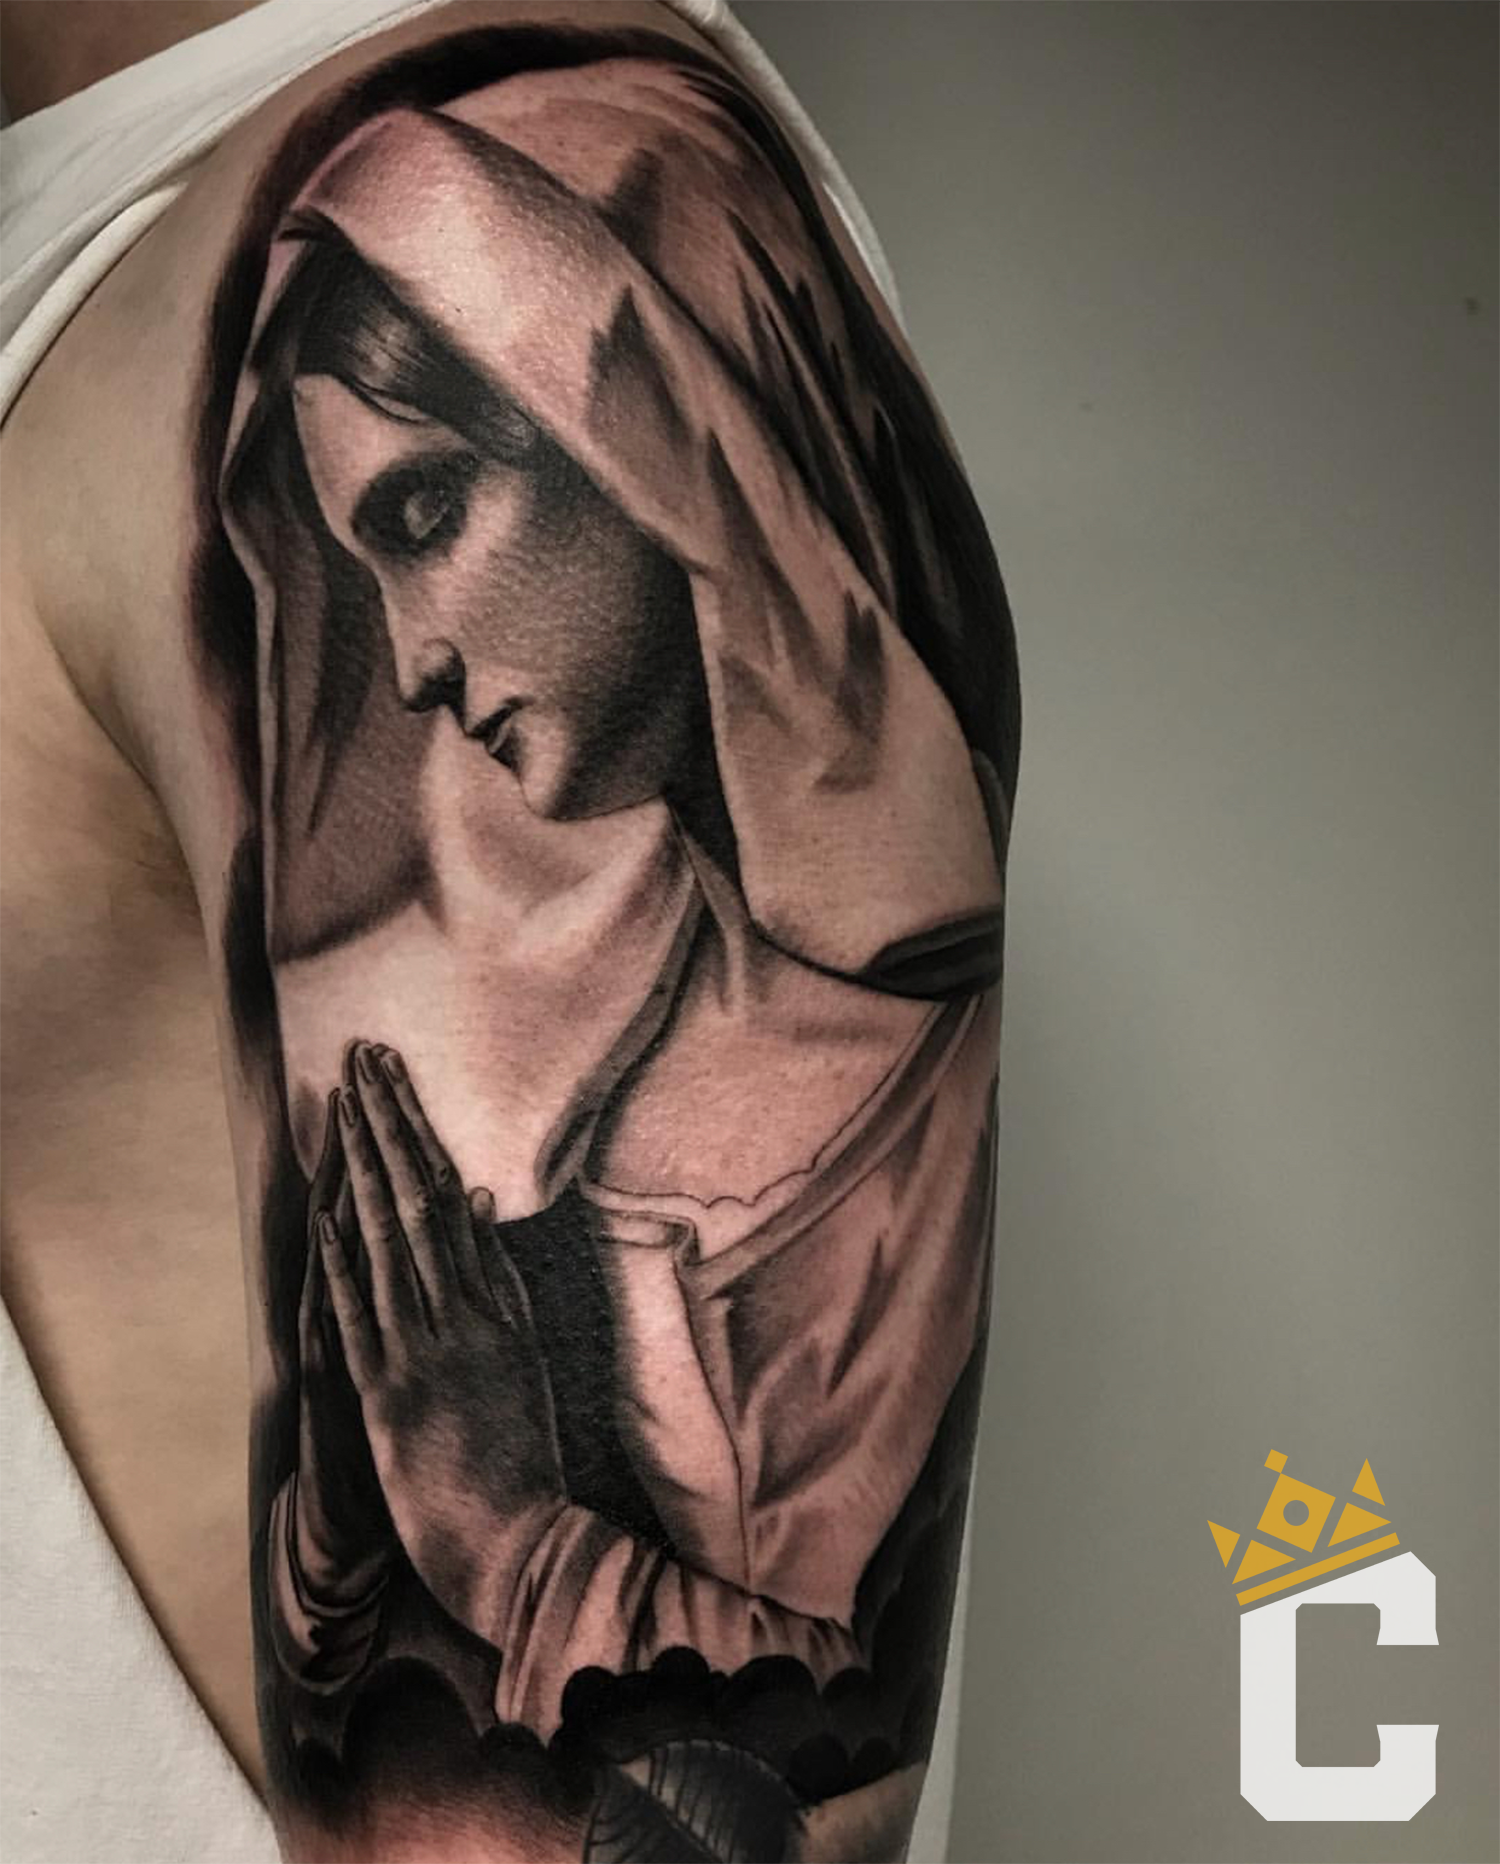 Full Of Grace Beautiful Black And Grey Tattoo By Salvador Check Out Salvador S Stunning Work Salvadordiaztattoo And Get The Right Inspir